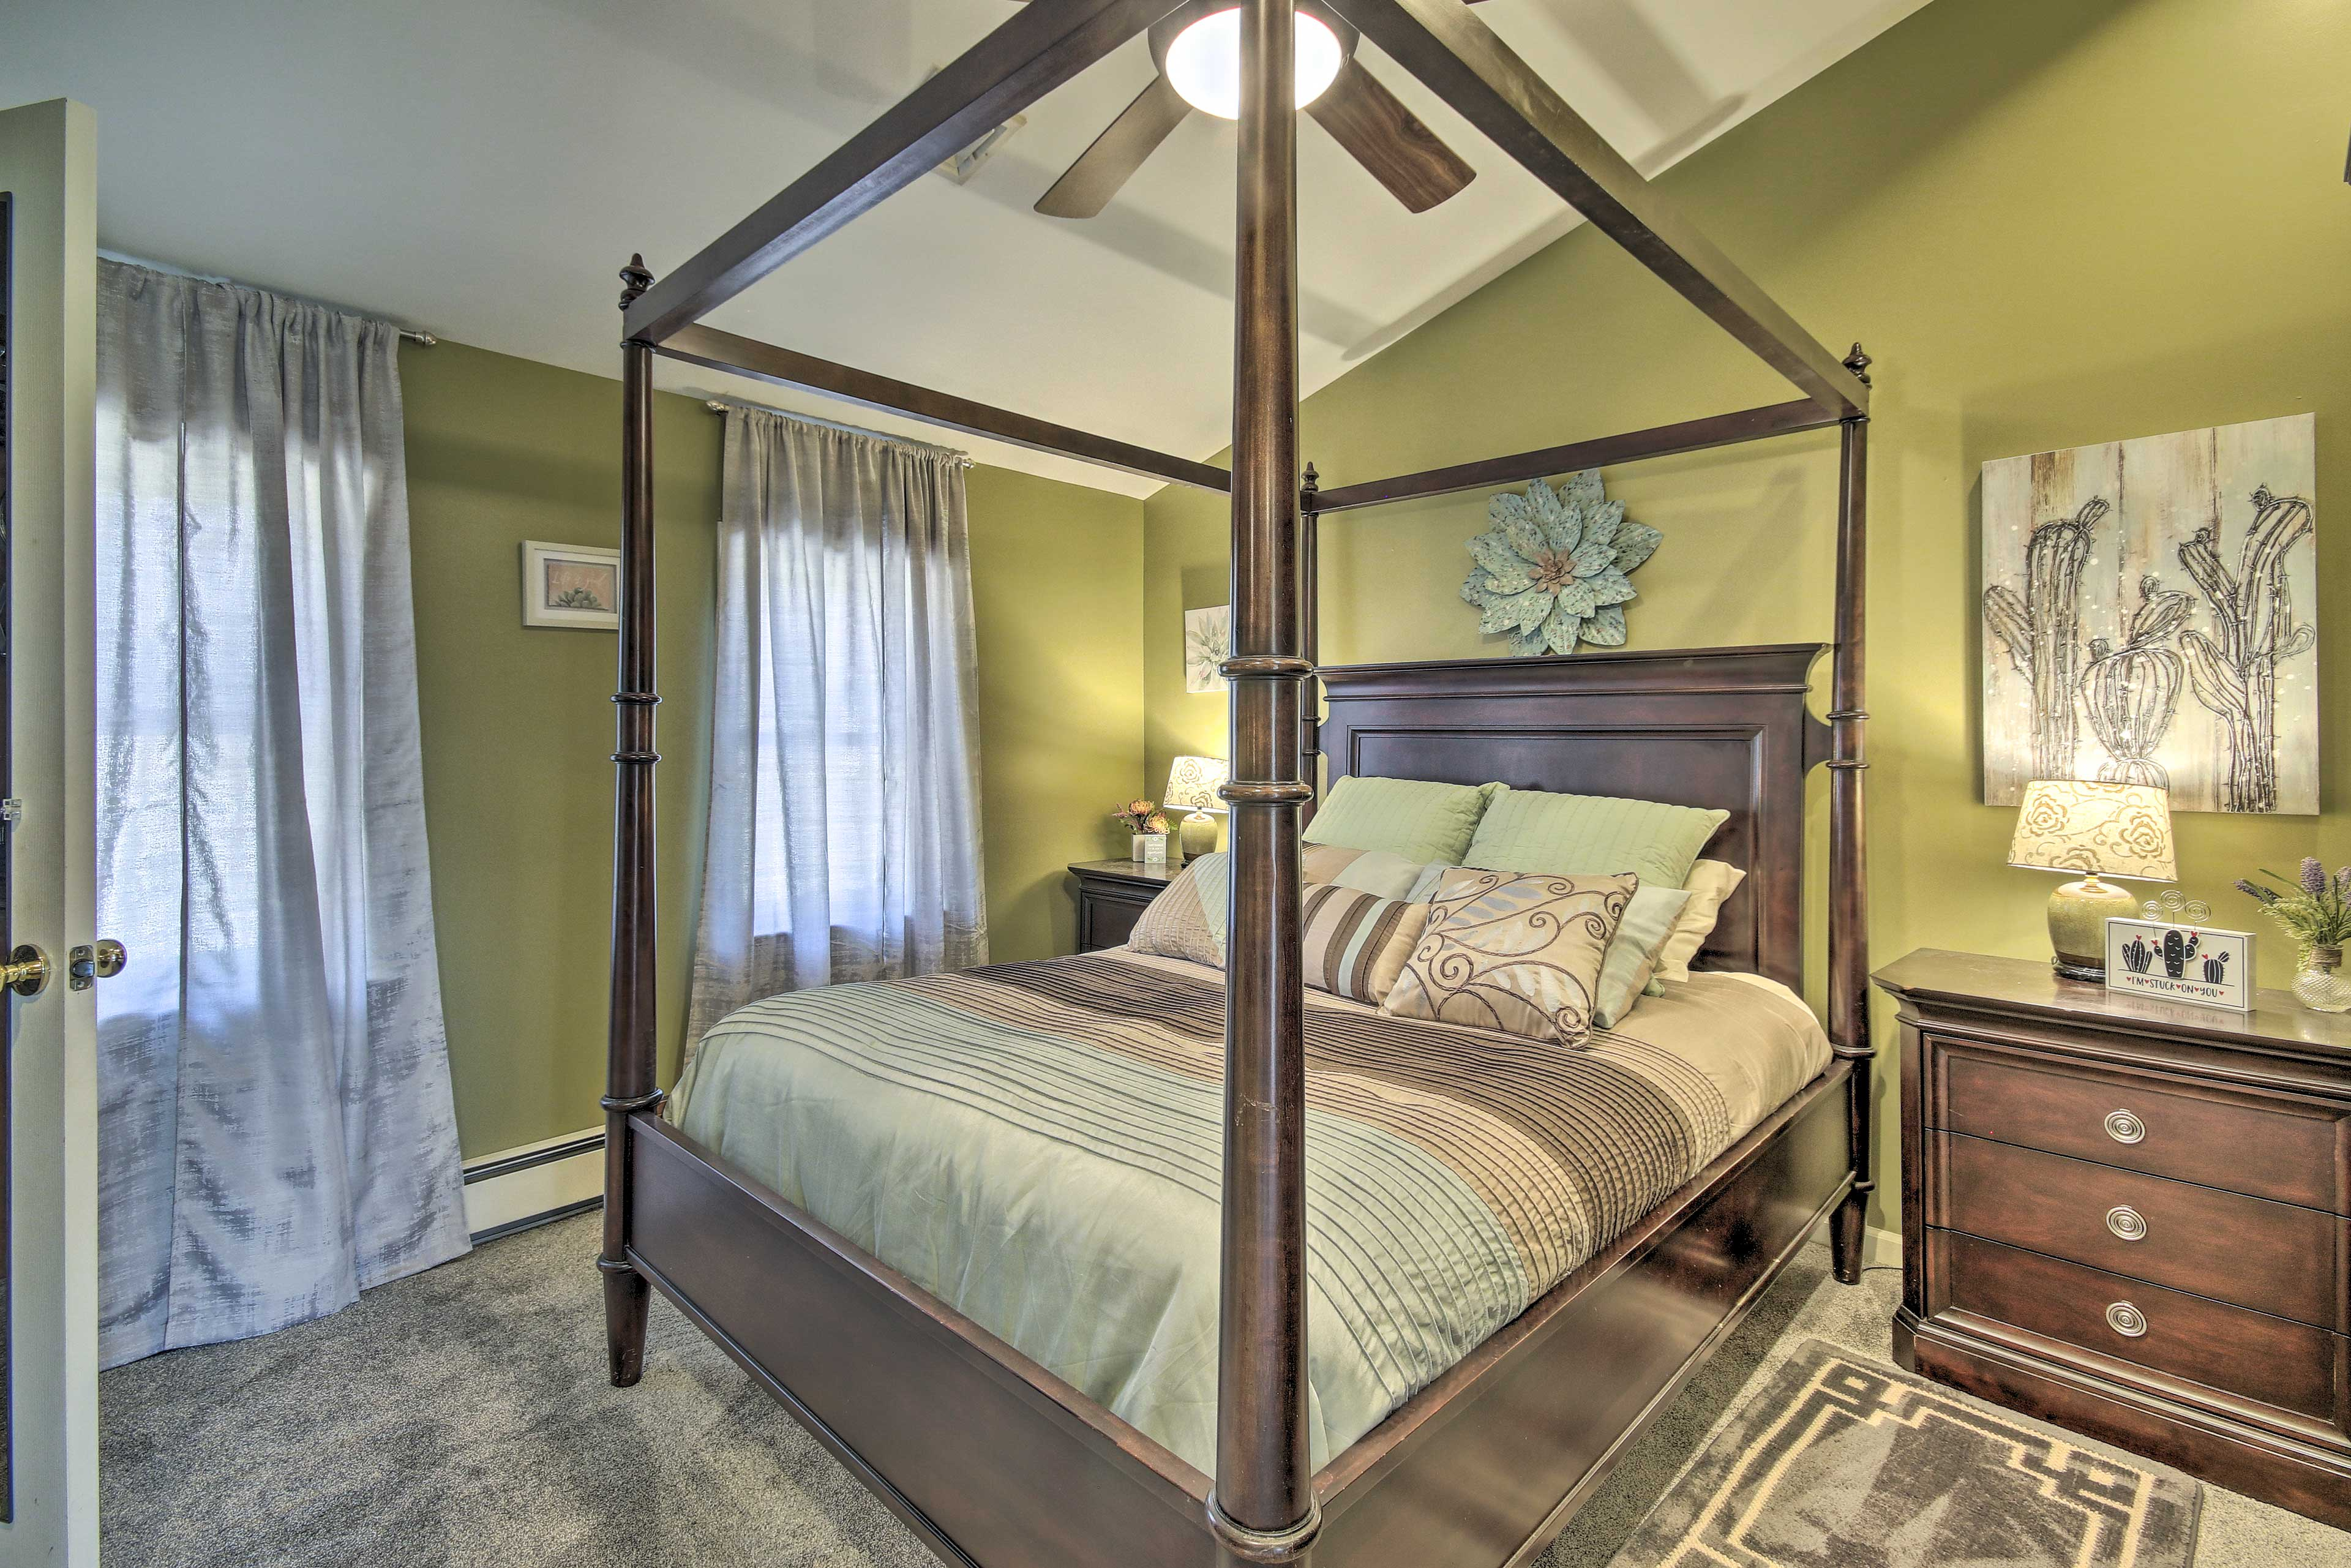 This bedroom hosts a 4 post, full-sized bed.